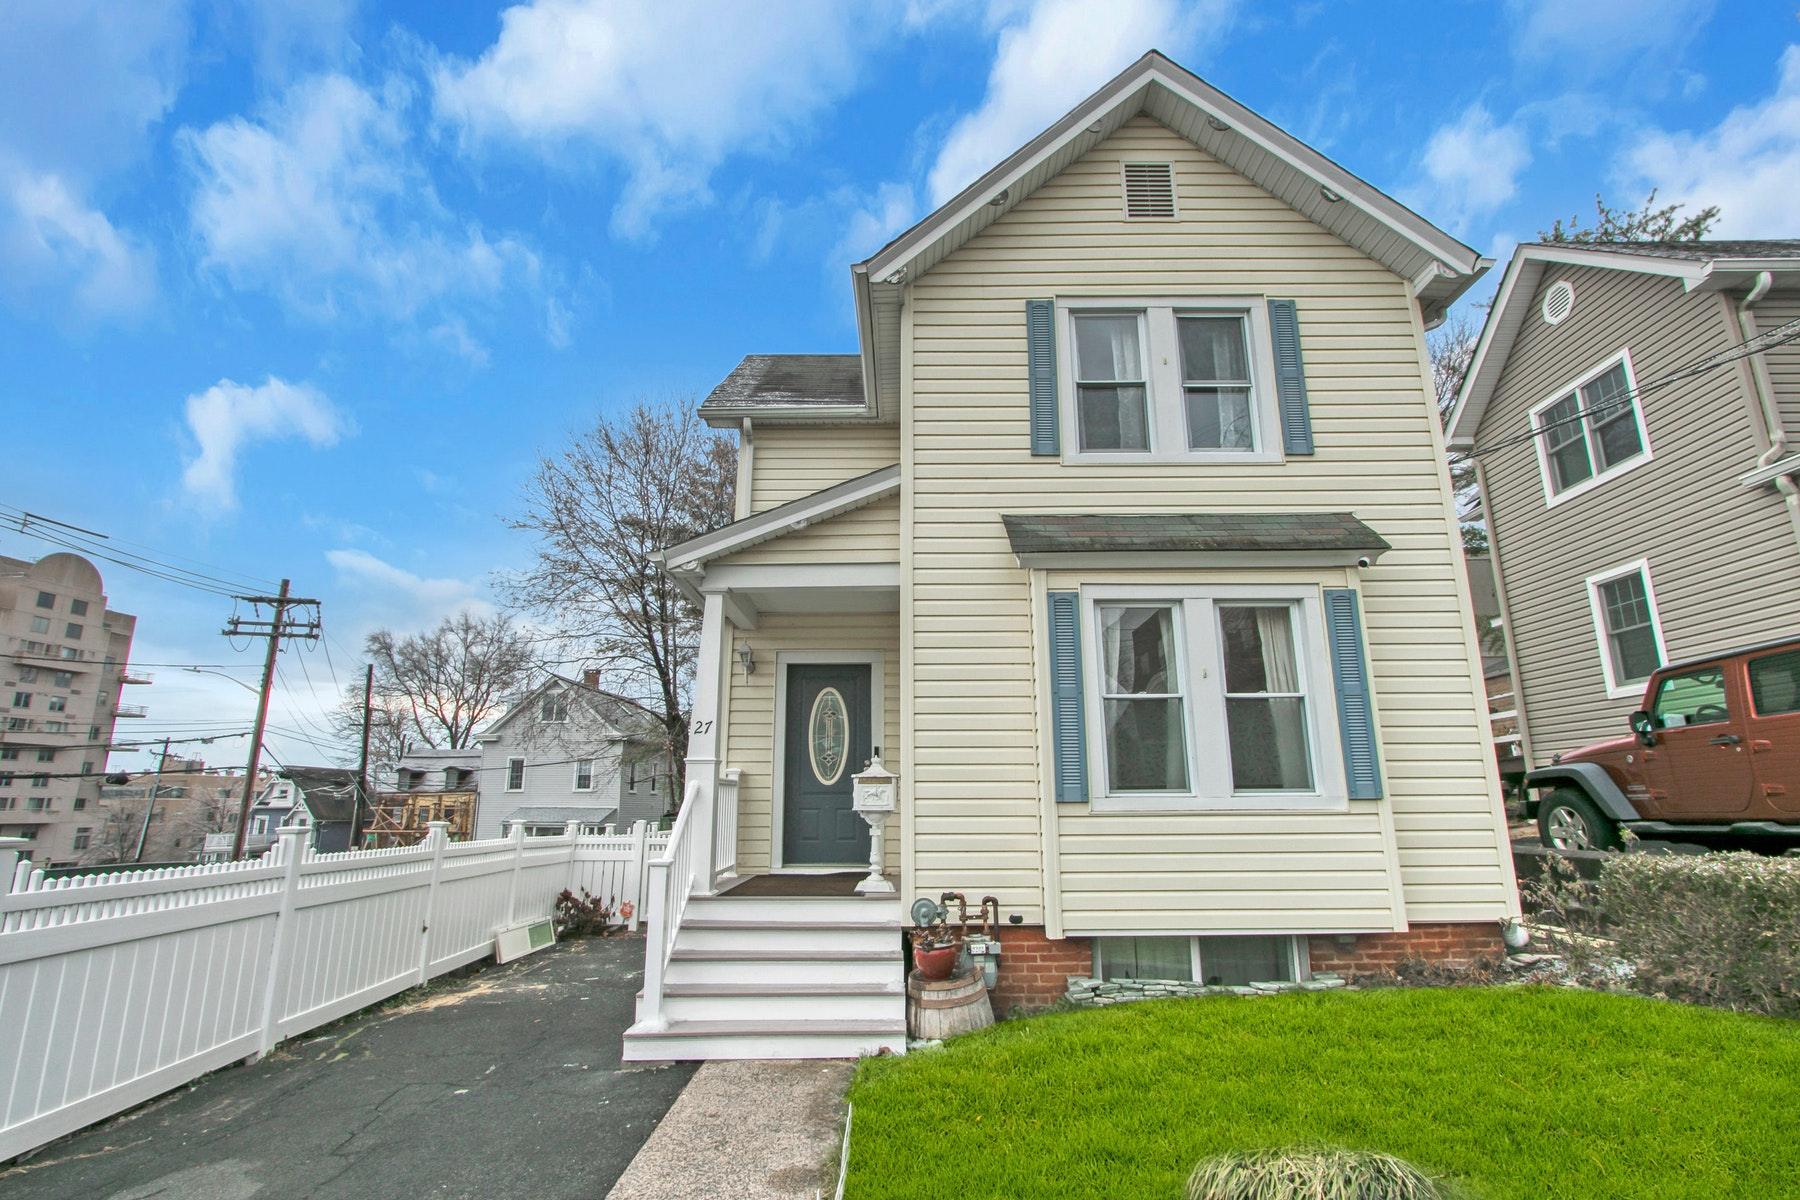 Single Family Homes for Sale at Village Colonial 27 Lydecker Street Nyack, New York 10960 United States